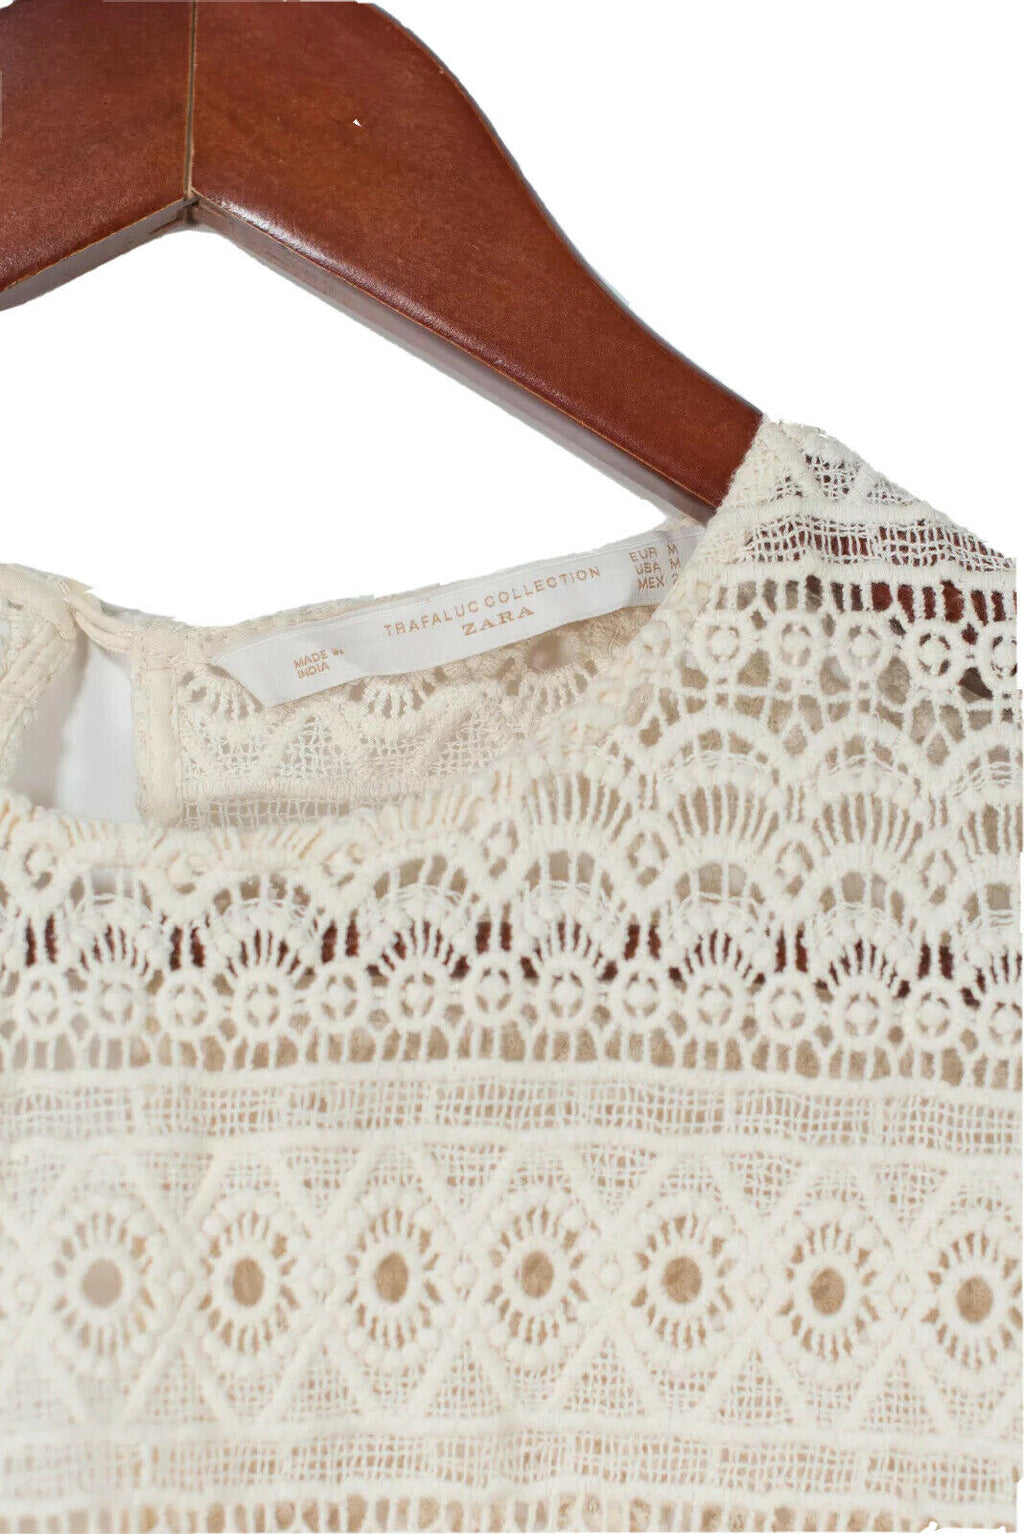 Zara TRF Collection Womens Medium Ivory Shirt Broderie en Anglais Crochet Top